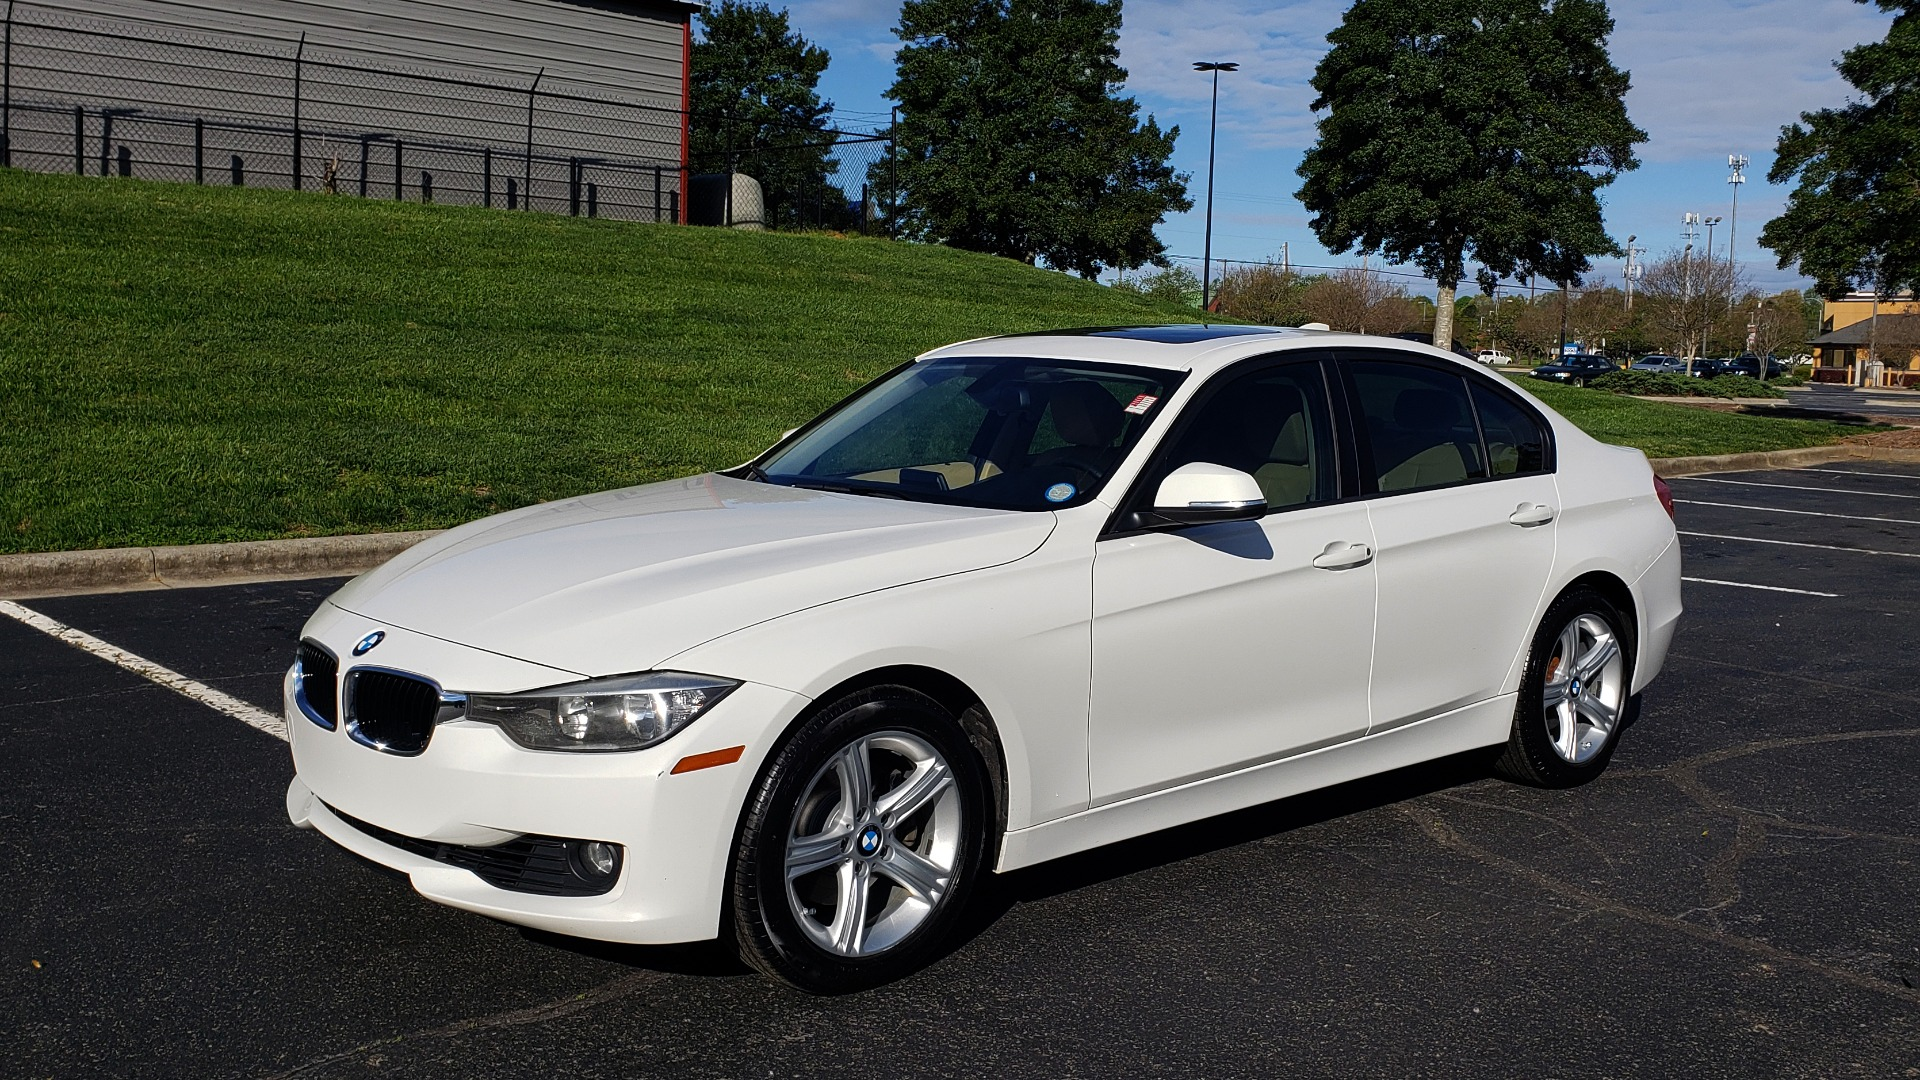 Used 2013 BMW 3 SERIES 328I PREMIUM / SUNROOF / COMFORT ACCESS KEY / SAT RADIO for sale Sold at Formula Imports in Charlotte NC 28227 1